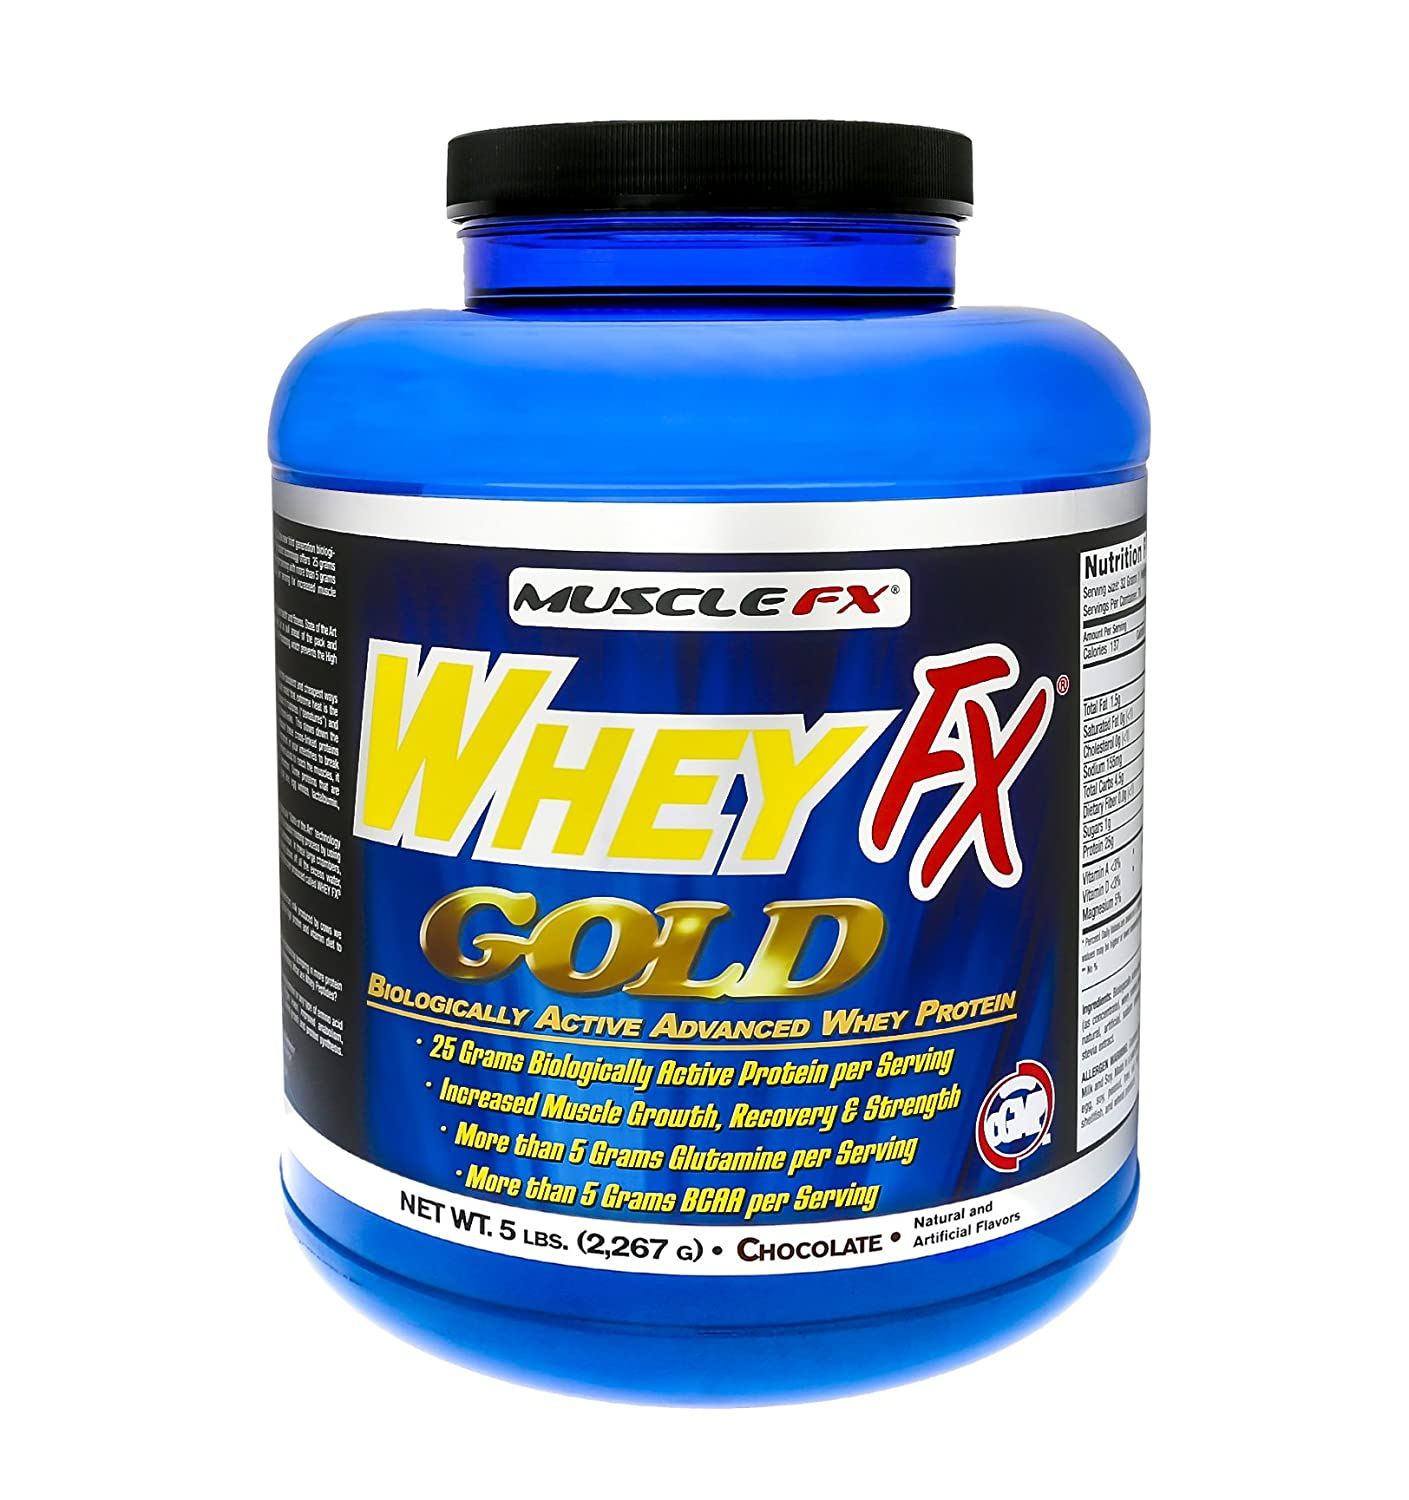 MUSCLE FX® WHEY FX GOLD® Biologically Active Advance Whey Protein 5 lbs (Chocolate)